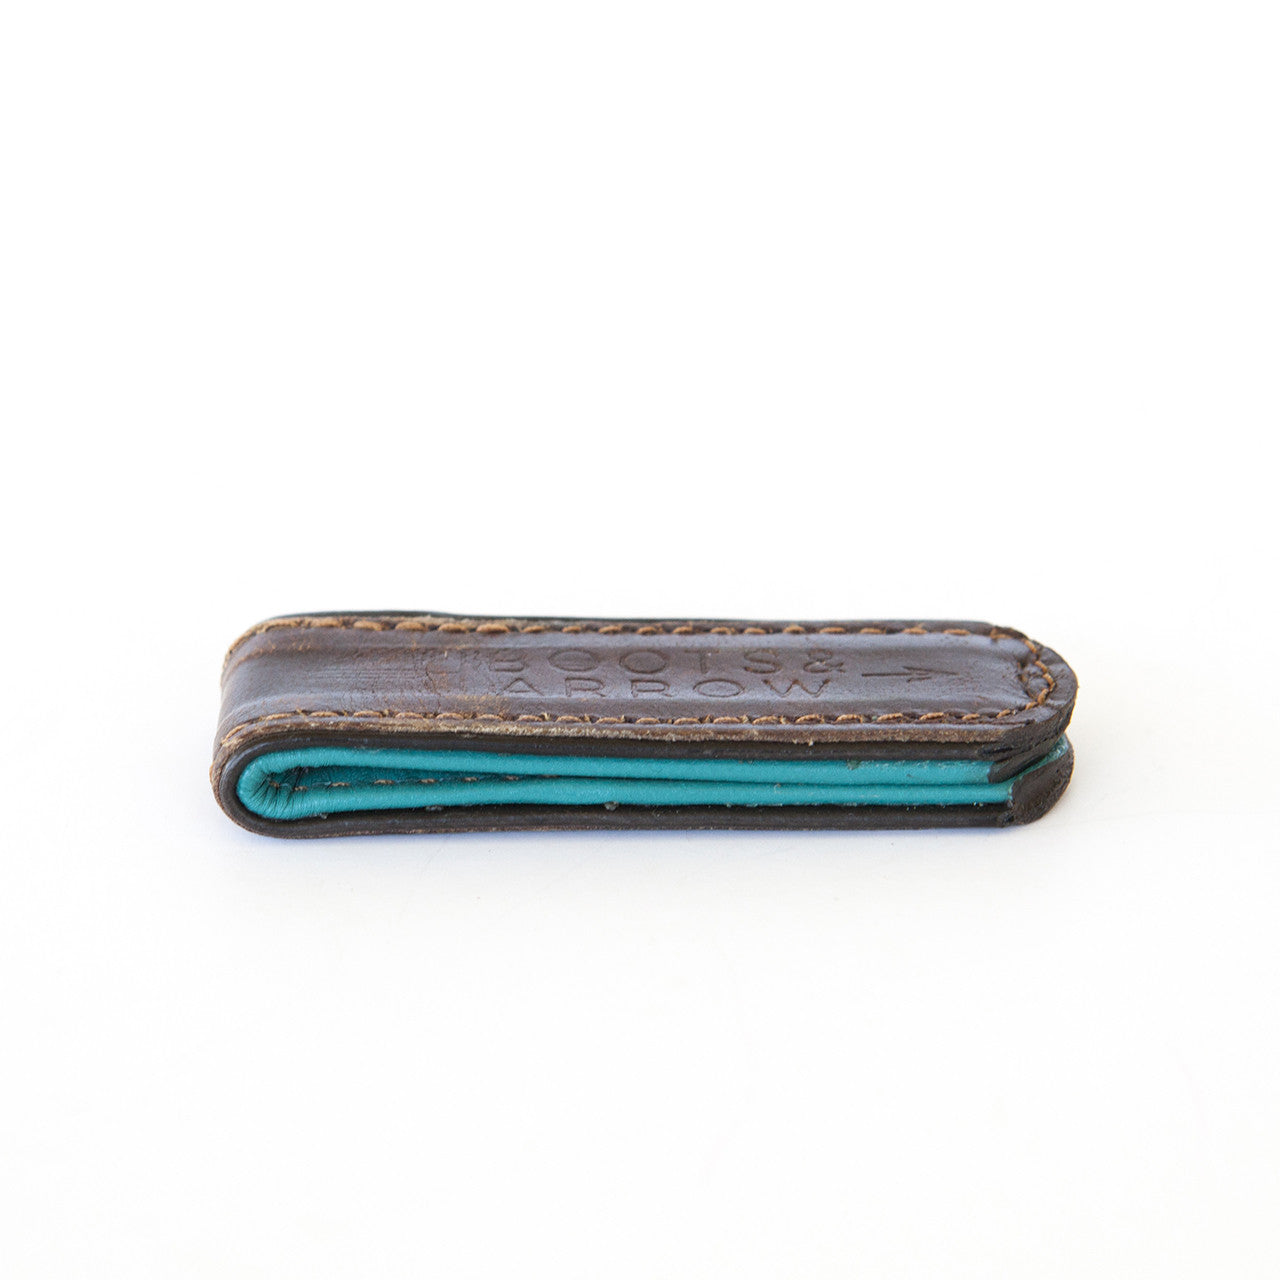 Brown + Turquoise Bootstrap Money Clip